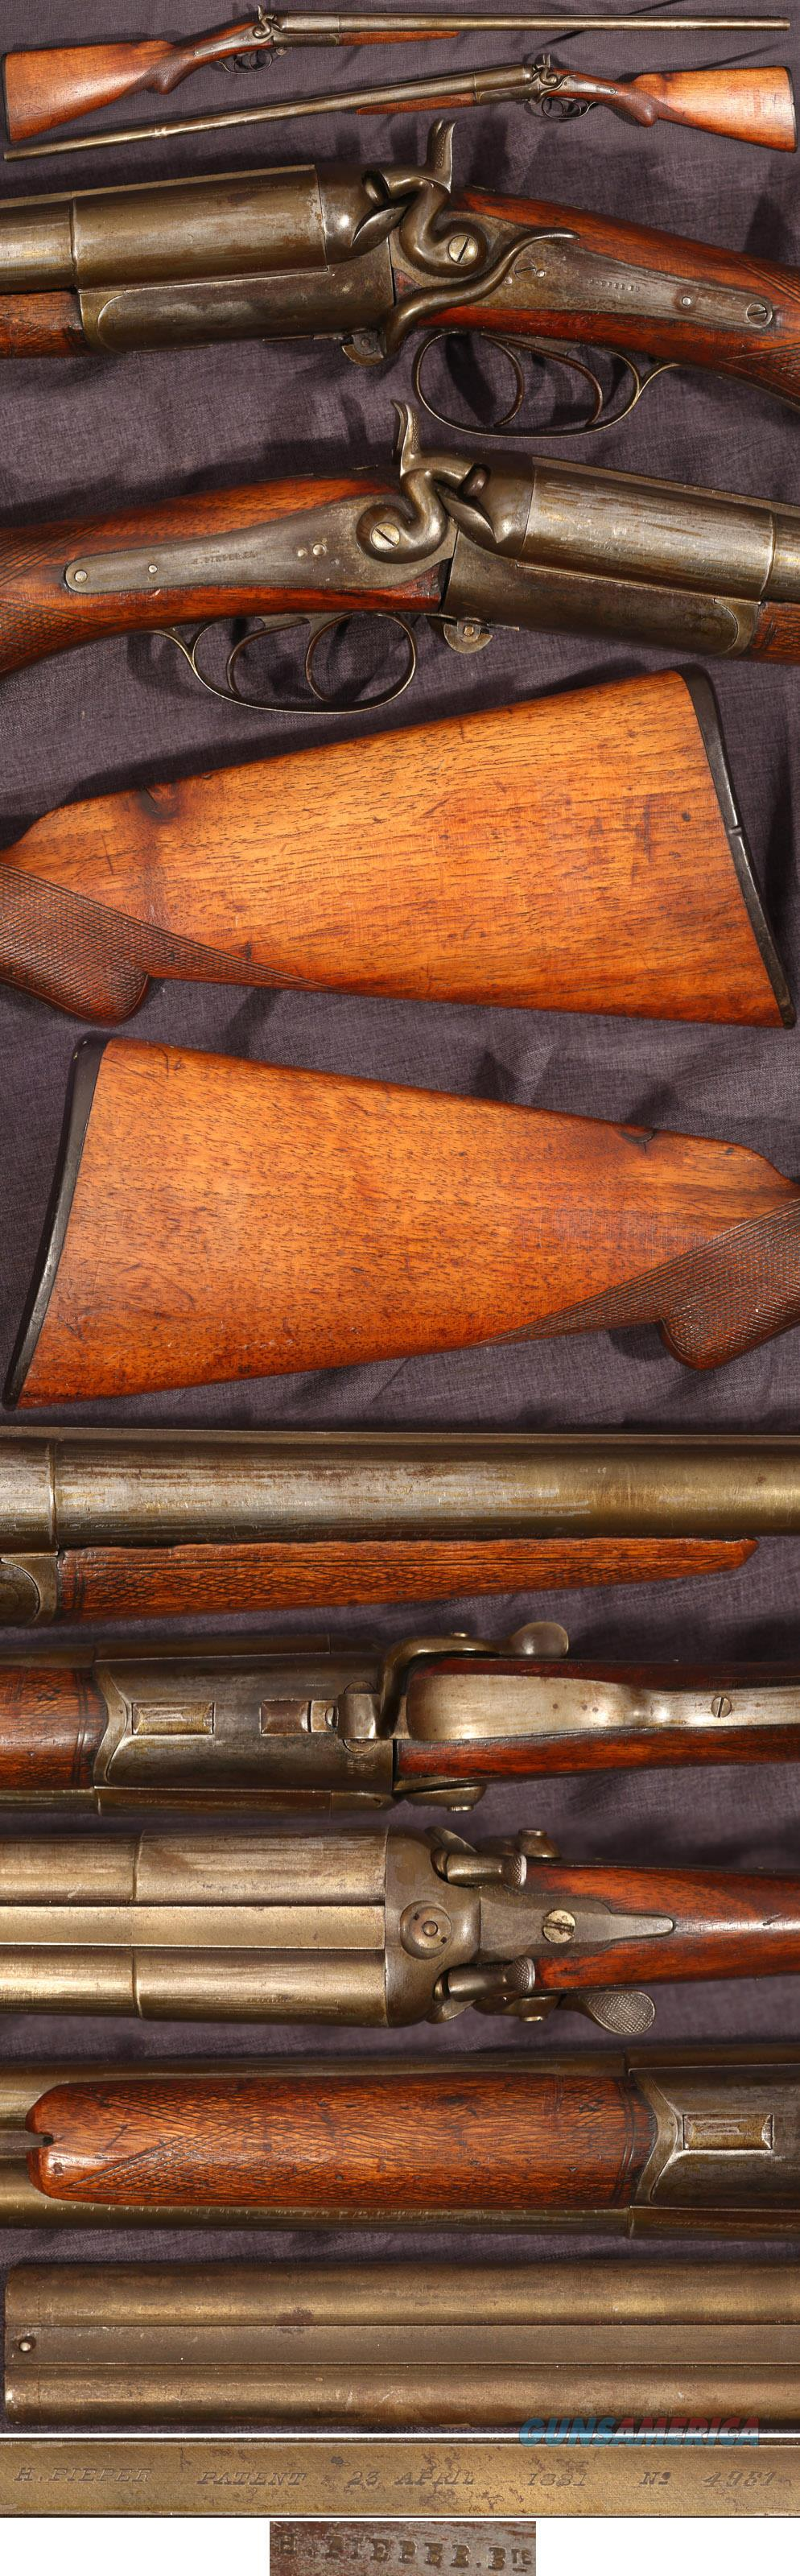 Henri Pieper double barrel cartridge shotgun  Guns > Shotguns > Antique (Pre-1899) Shotguns - Misc.